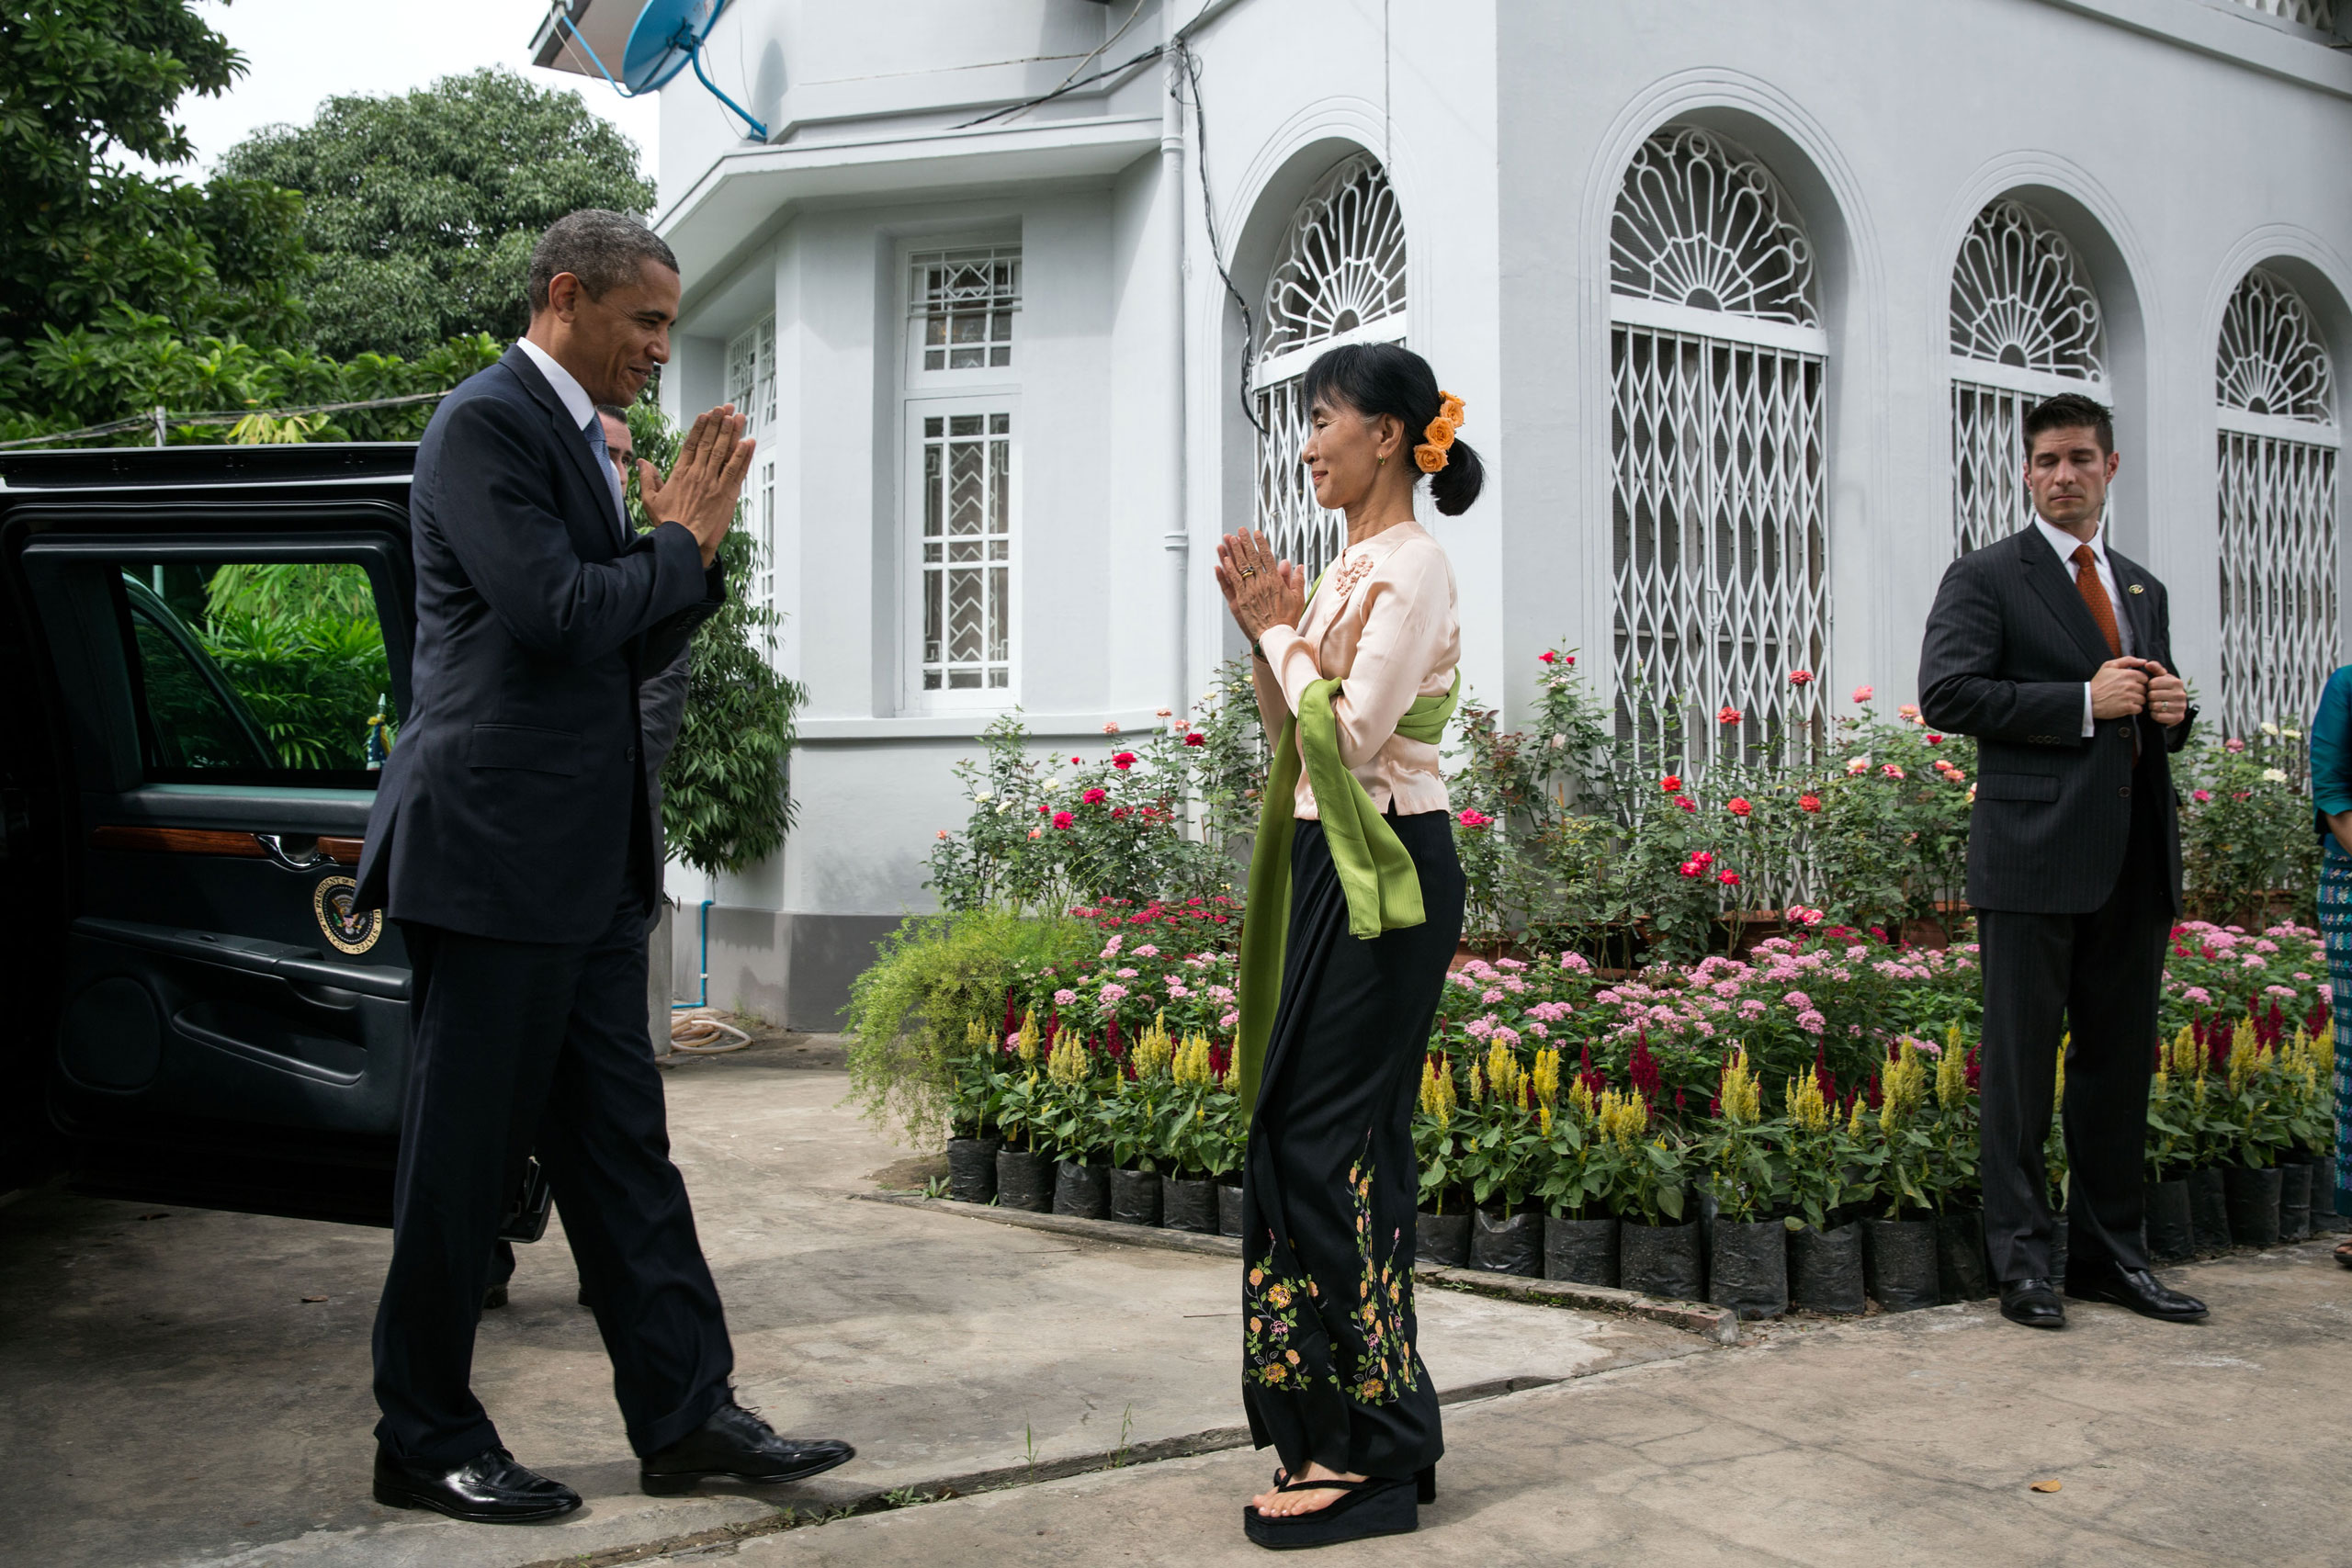 President Barack Obama greets Burmese Opposition Leader Aung San Suu Kyi during a visit to her private residence in Rangoon, Burma, Nov. 19, 2012.